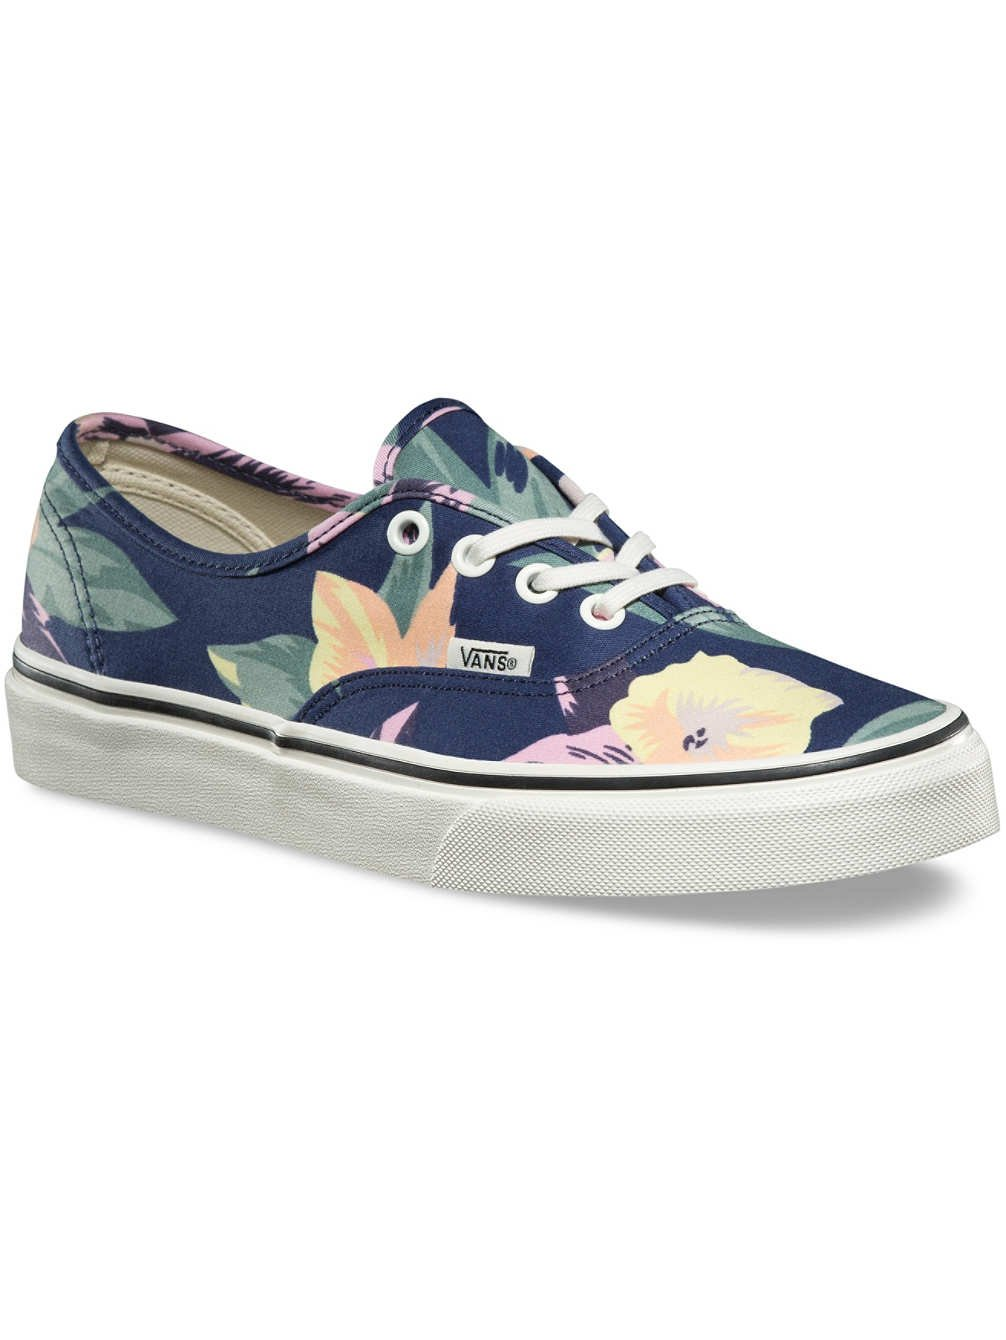 Vans Authentic Vintage Floral Navy/Marshmallow Ankle-High Canvas Skateboarding Shoe - 7M 5.5M by Vans